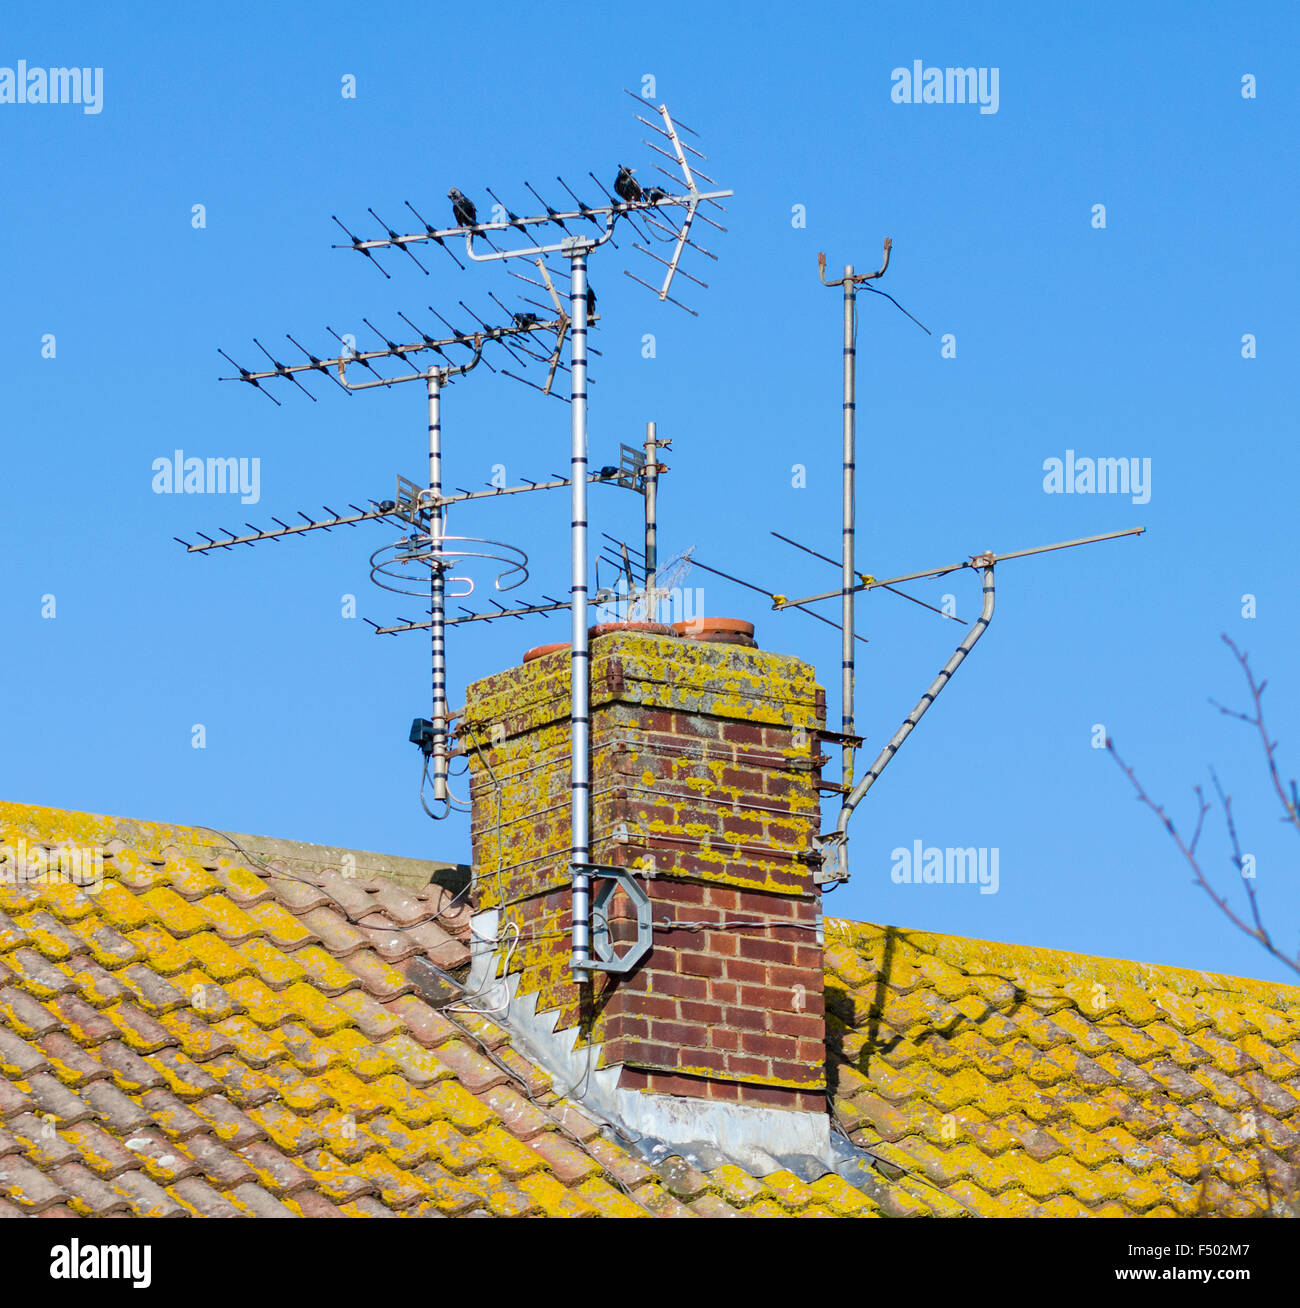 TV antennas on a chimney stack on a house in the UK. - Stock Image